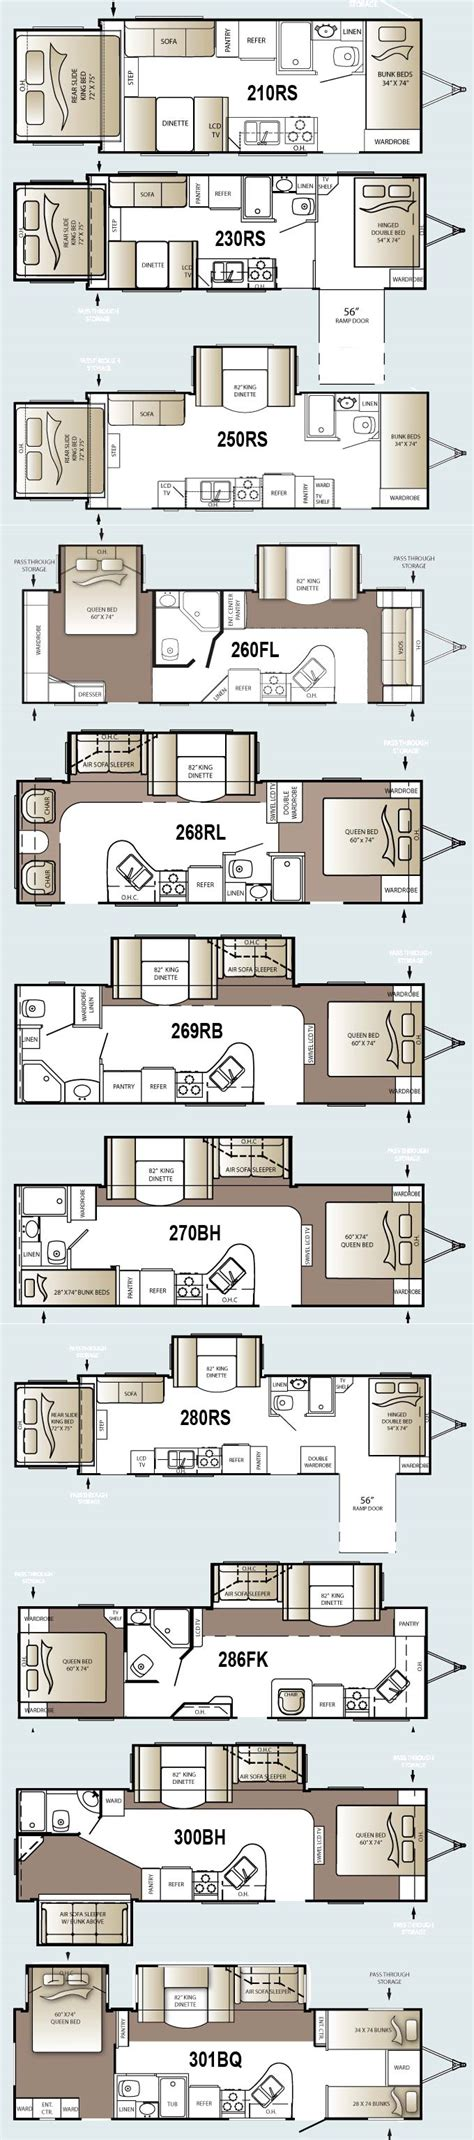 outback rv floor plans keystone outback travel trailer floorplans large picture